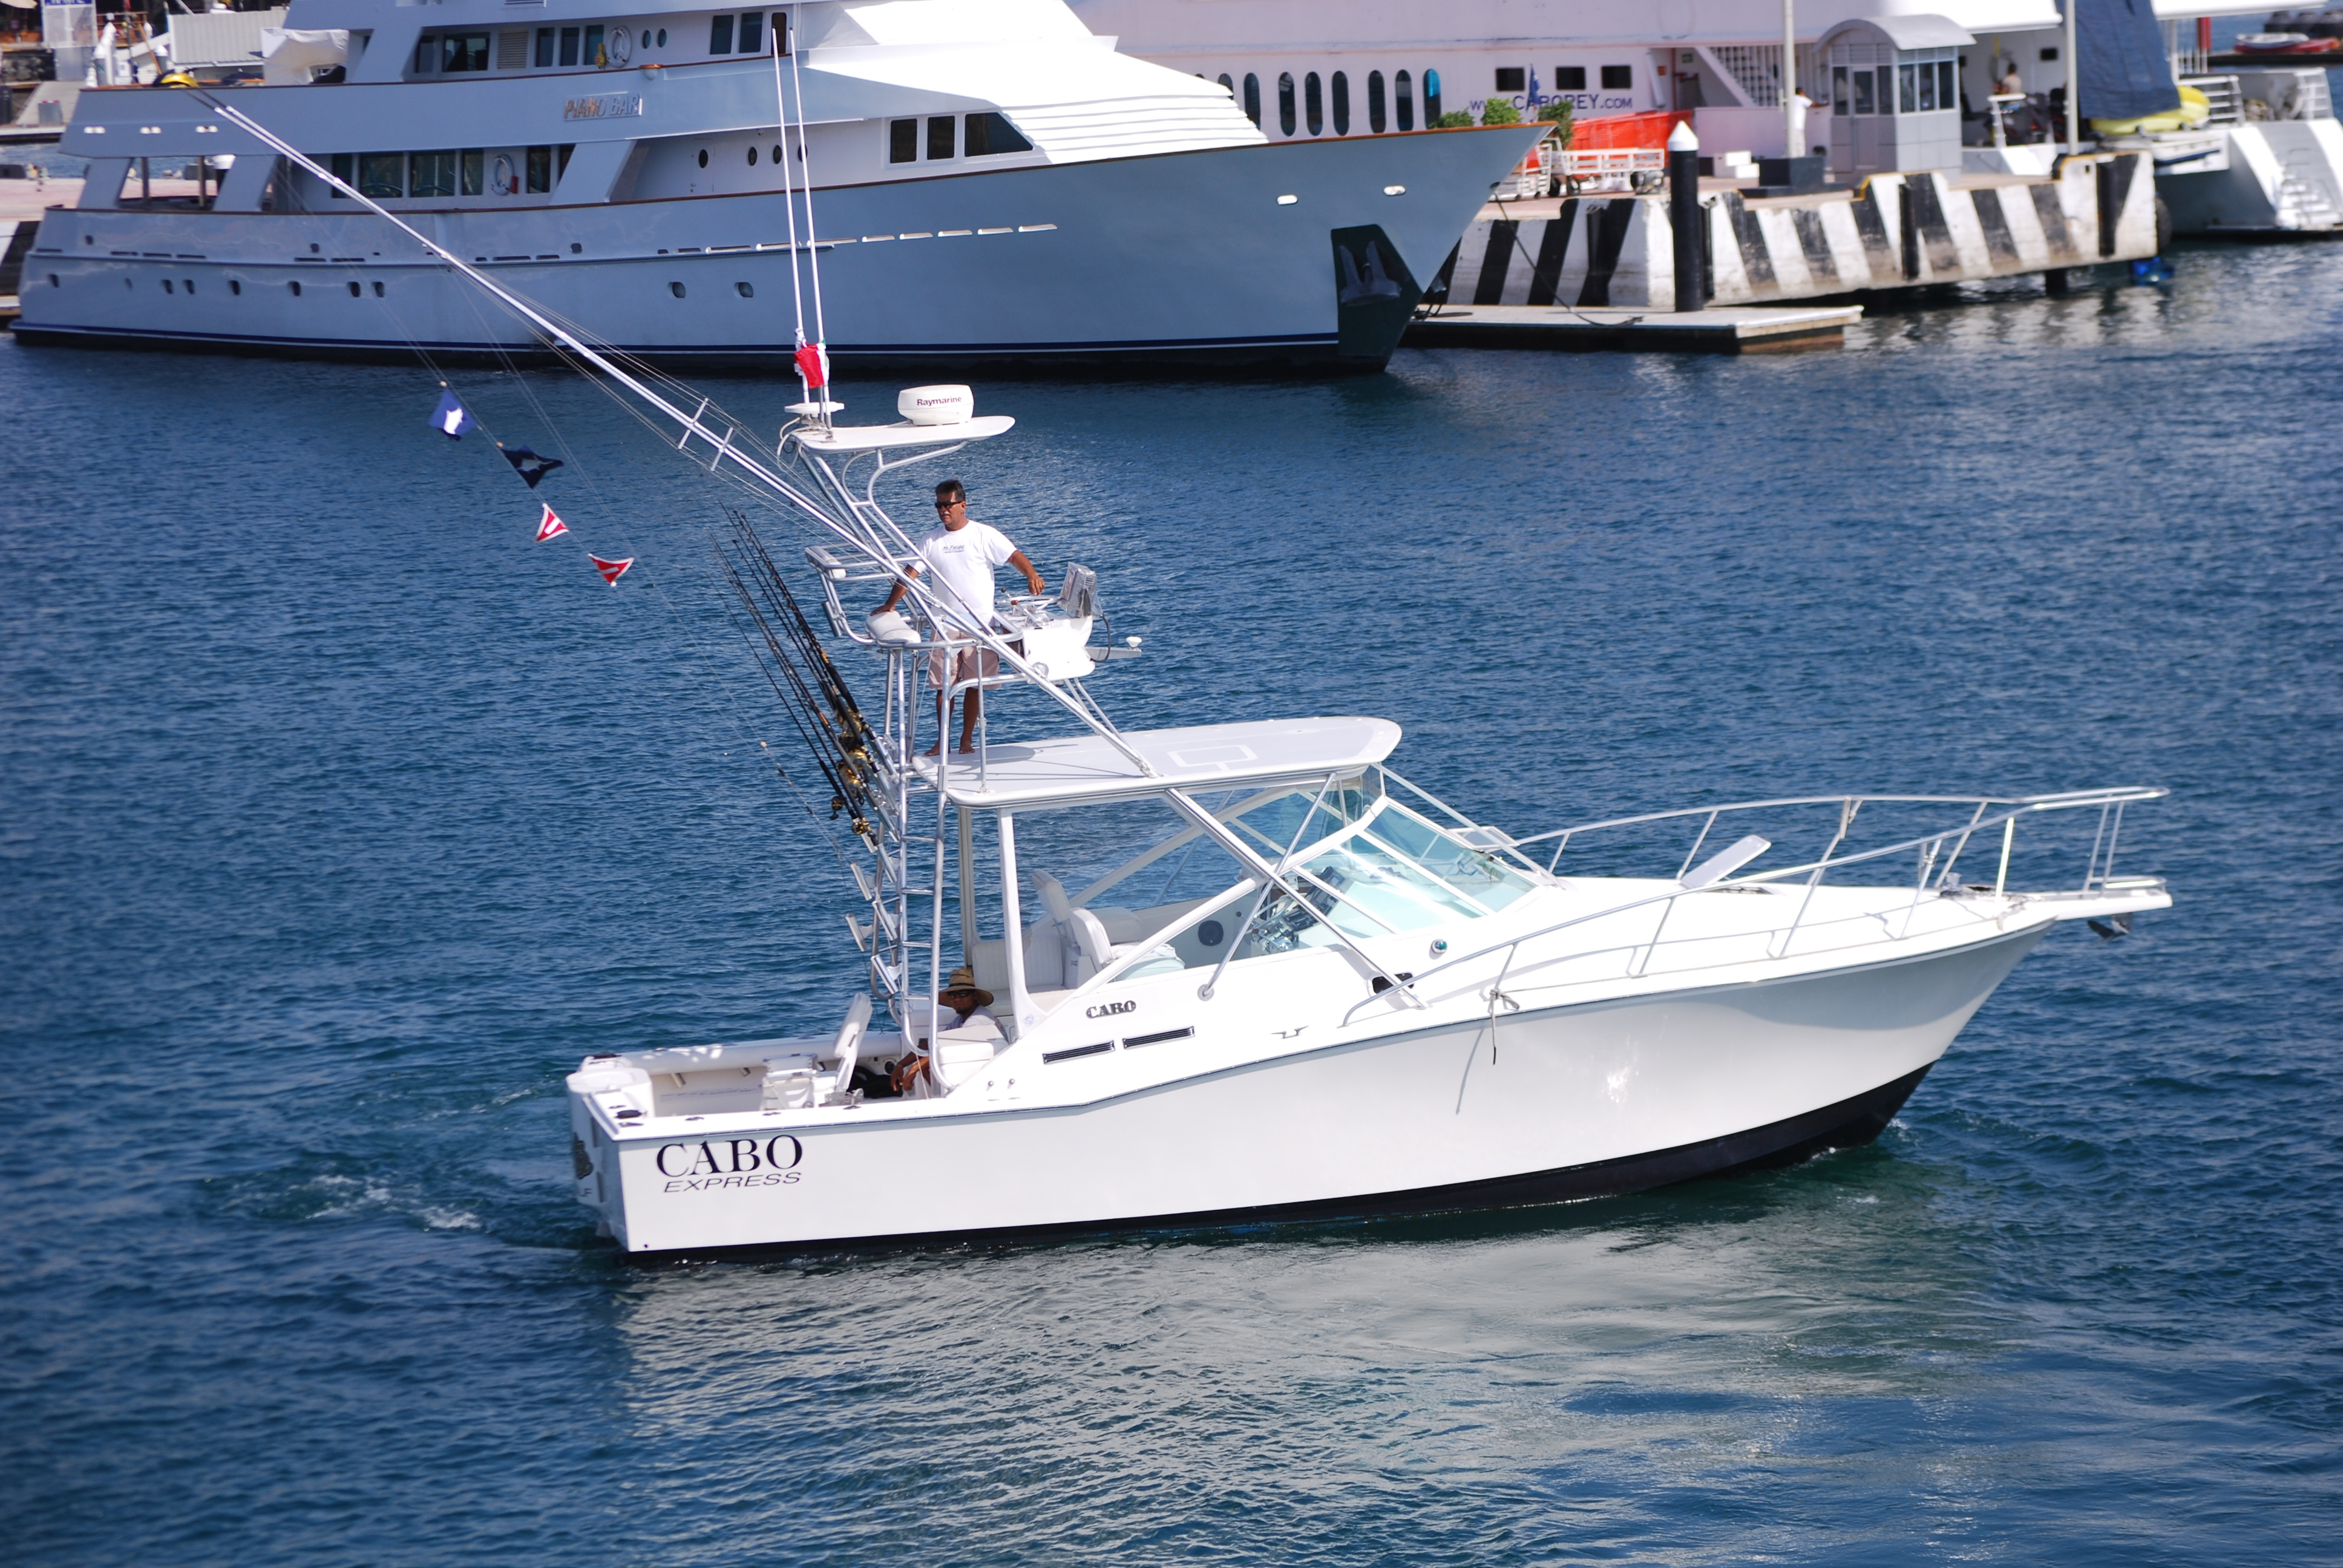 Cabo san lucas fishing for Cabo san lucas fishing charters prices